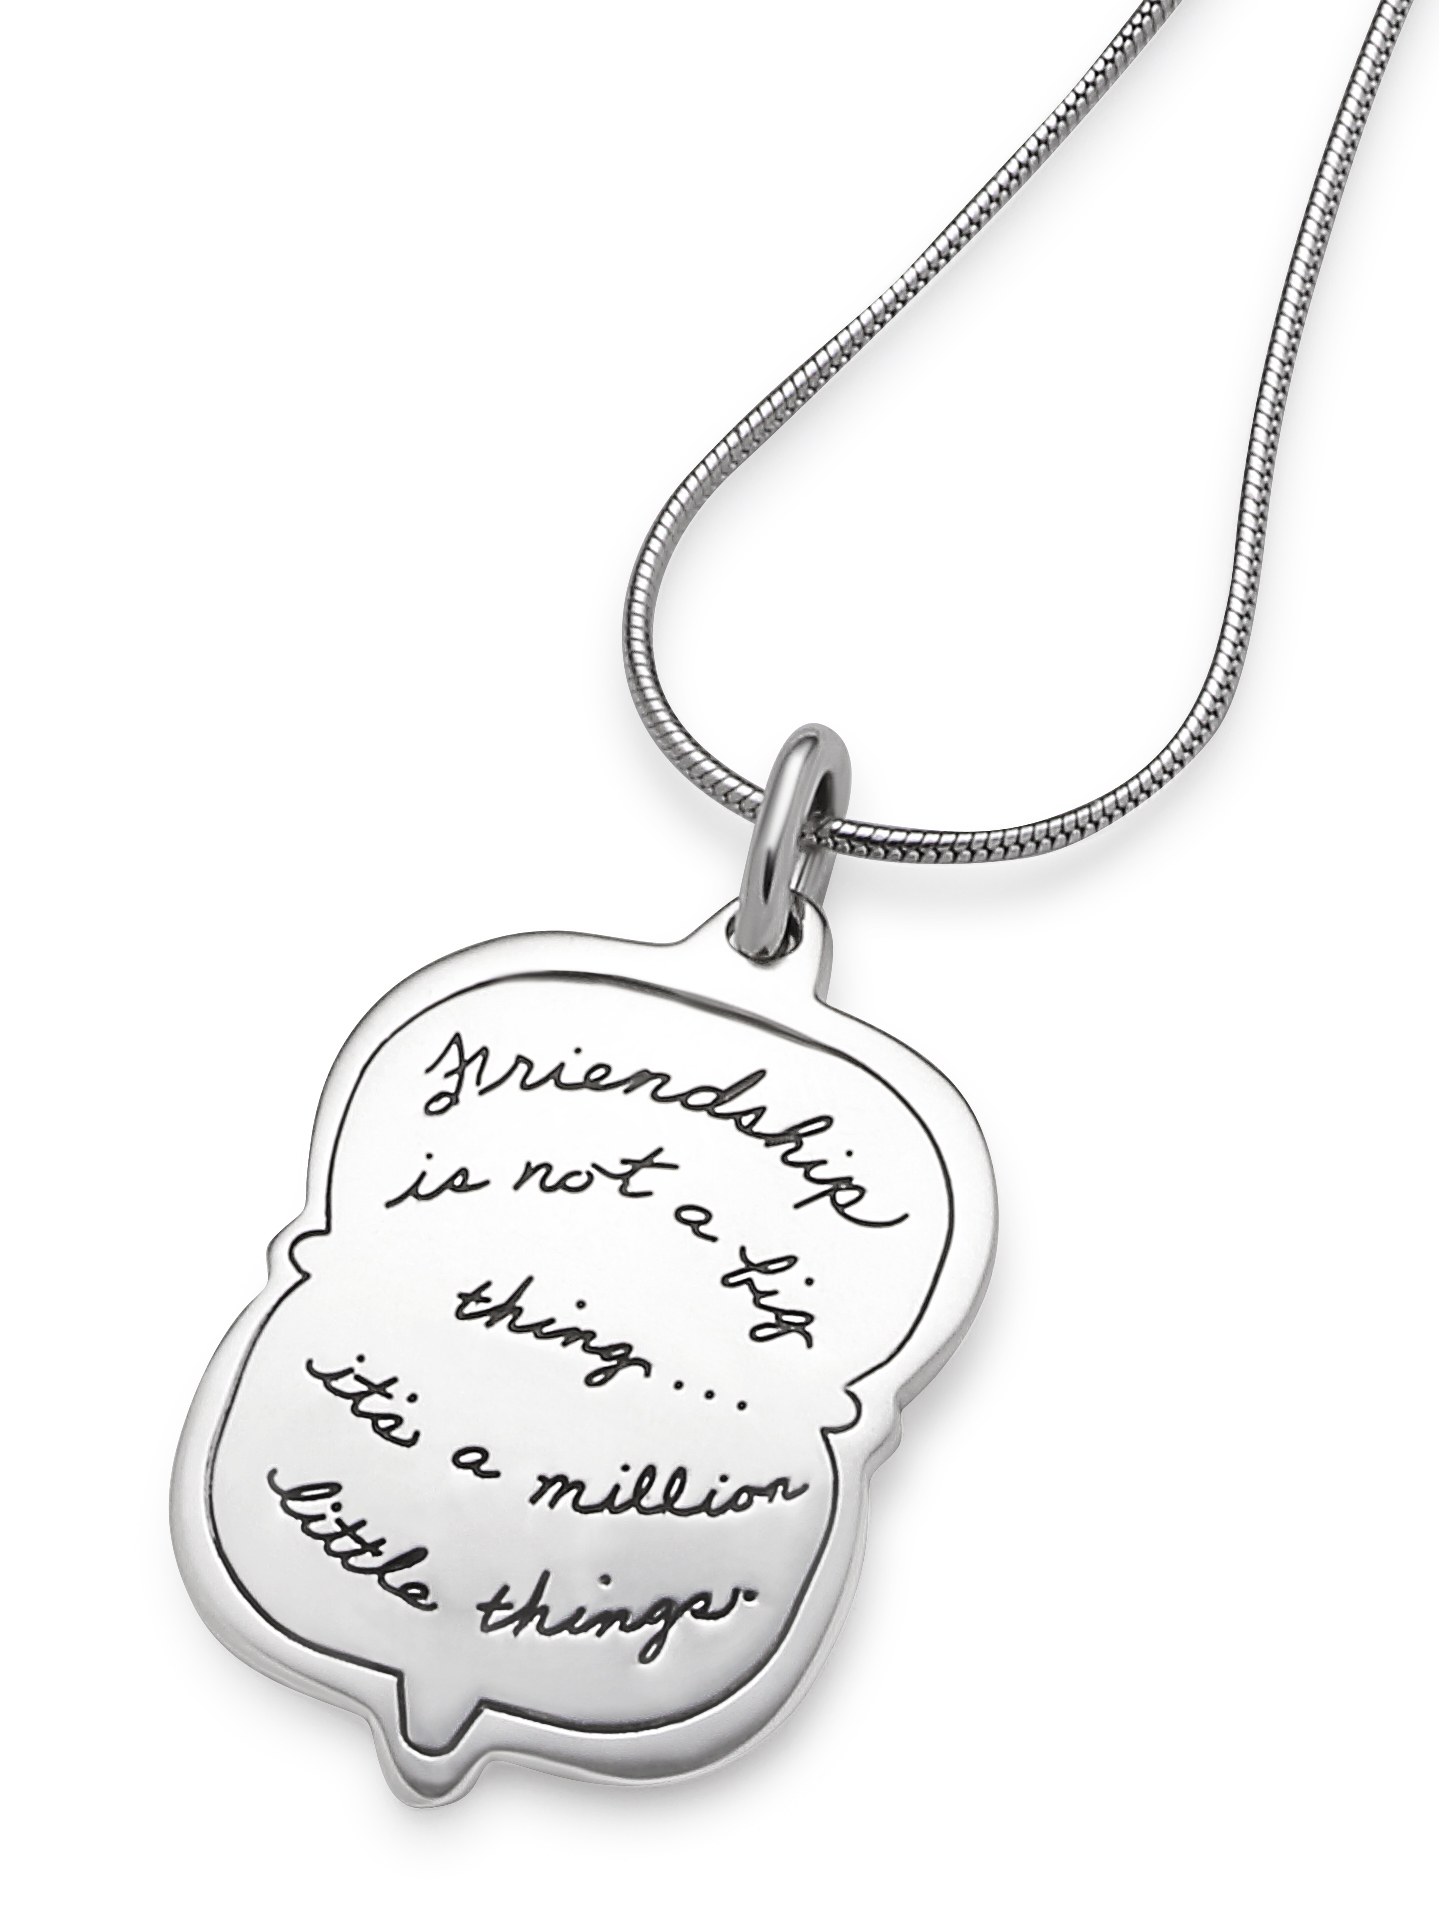 Sterling silver cameo silhouette shaped necklace with Inspirational engraved quote: Friendship is not a big thing...it's a million little things.